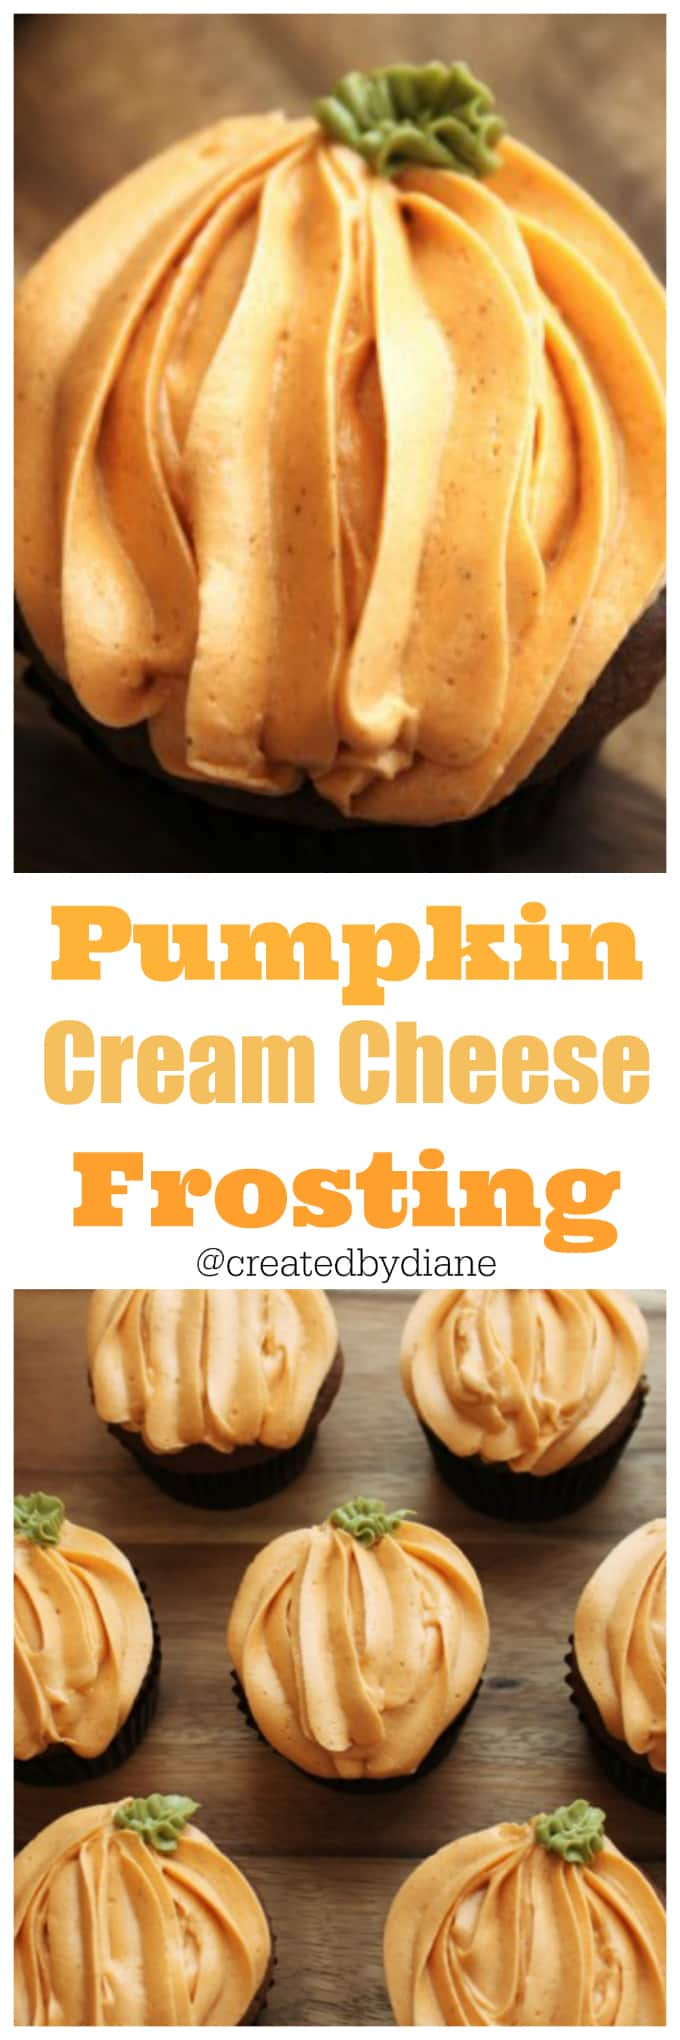 Pumpkin Cream Cheese Frosting @createdbydiane